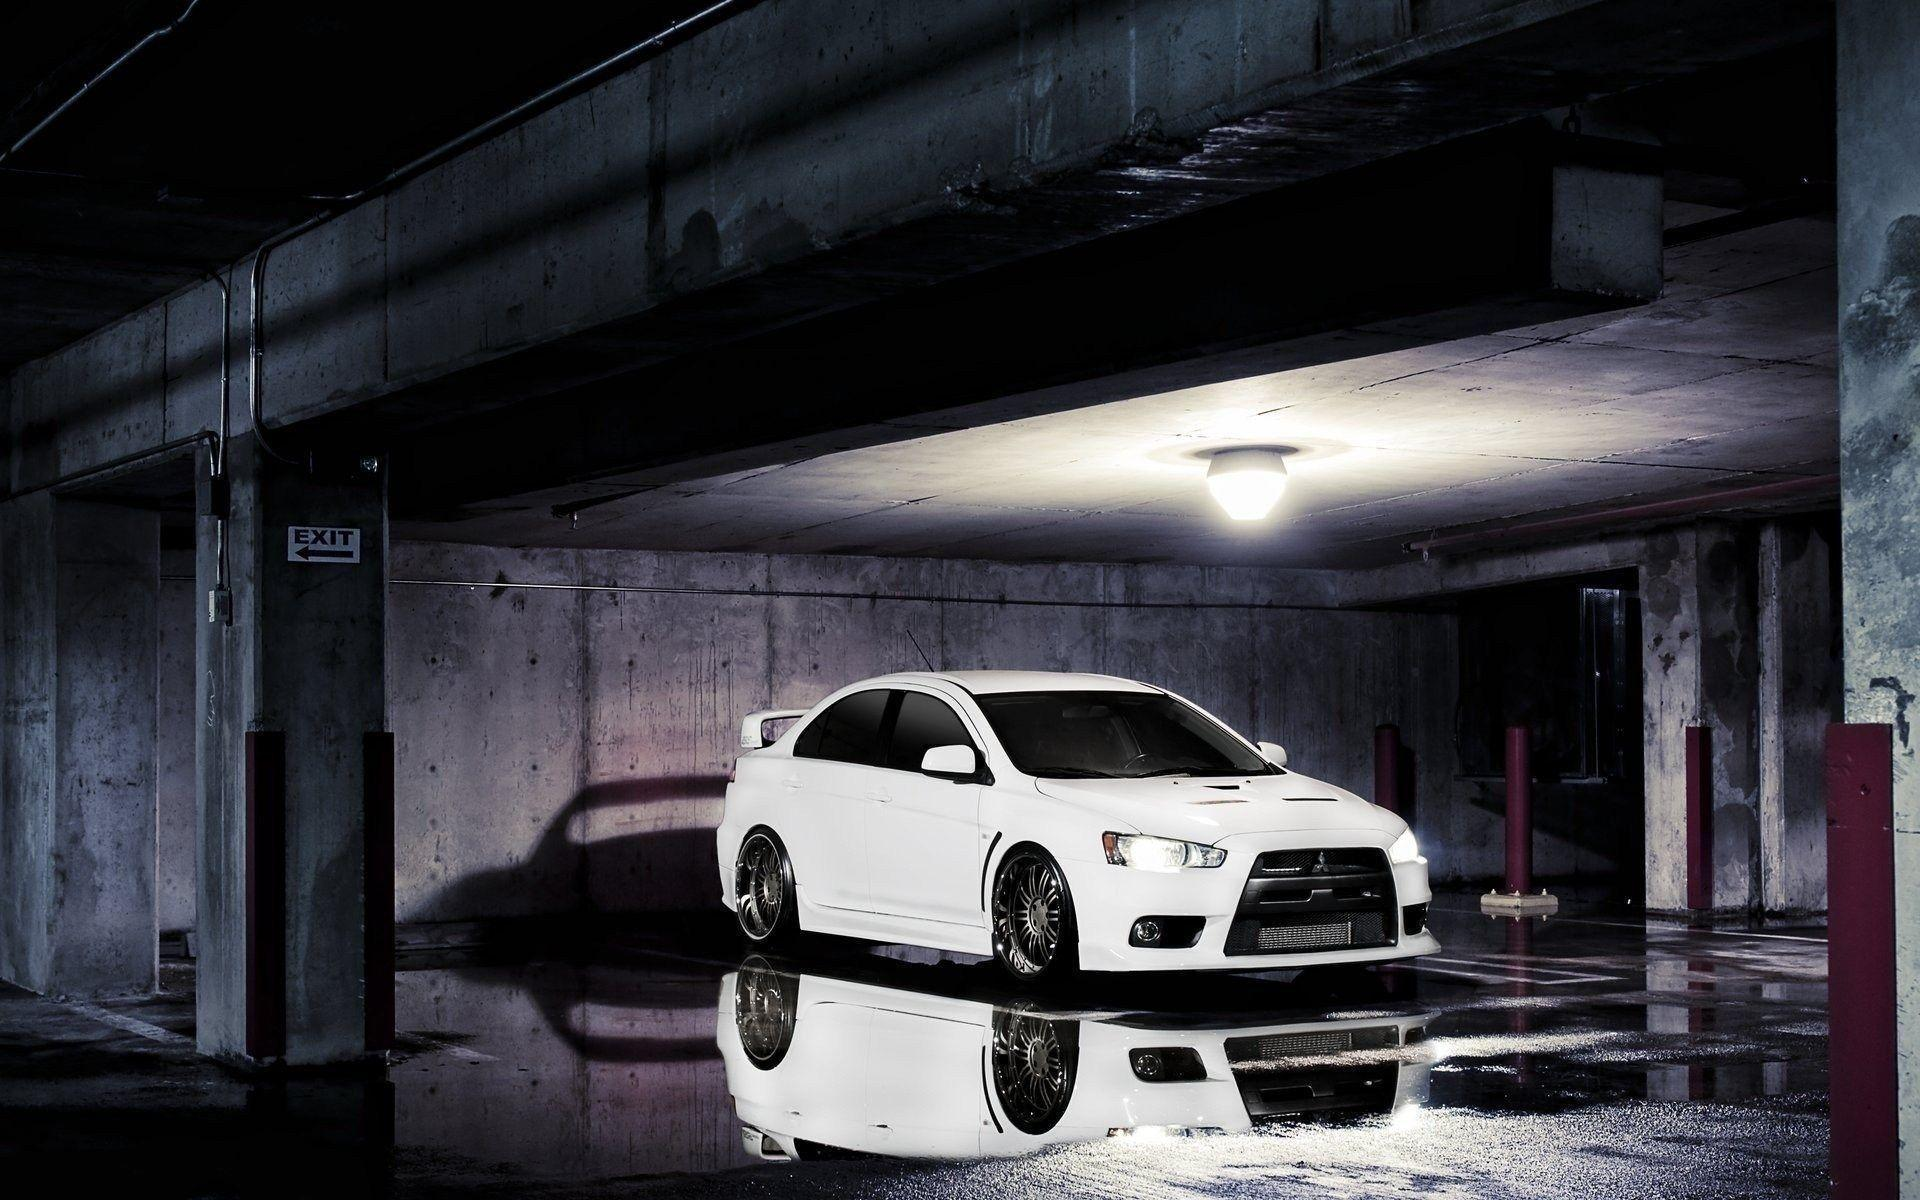 Mitsubishi Lancer Evolution X Parking Water Reflection Floor HD